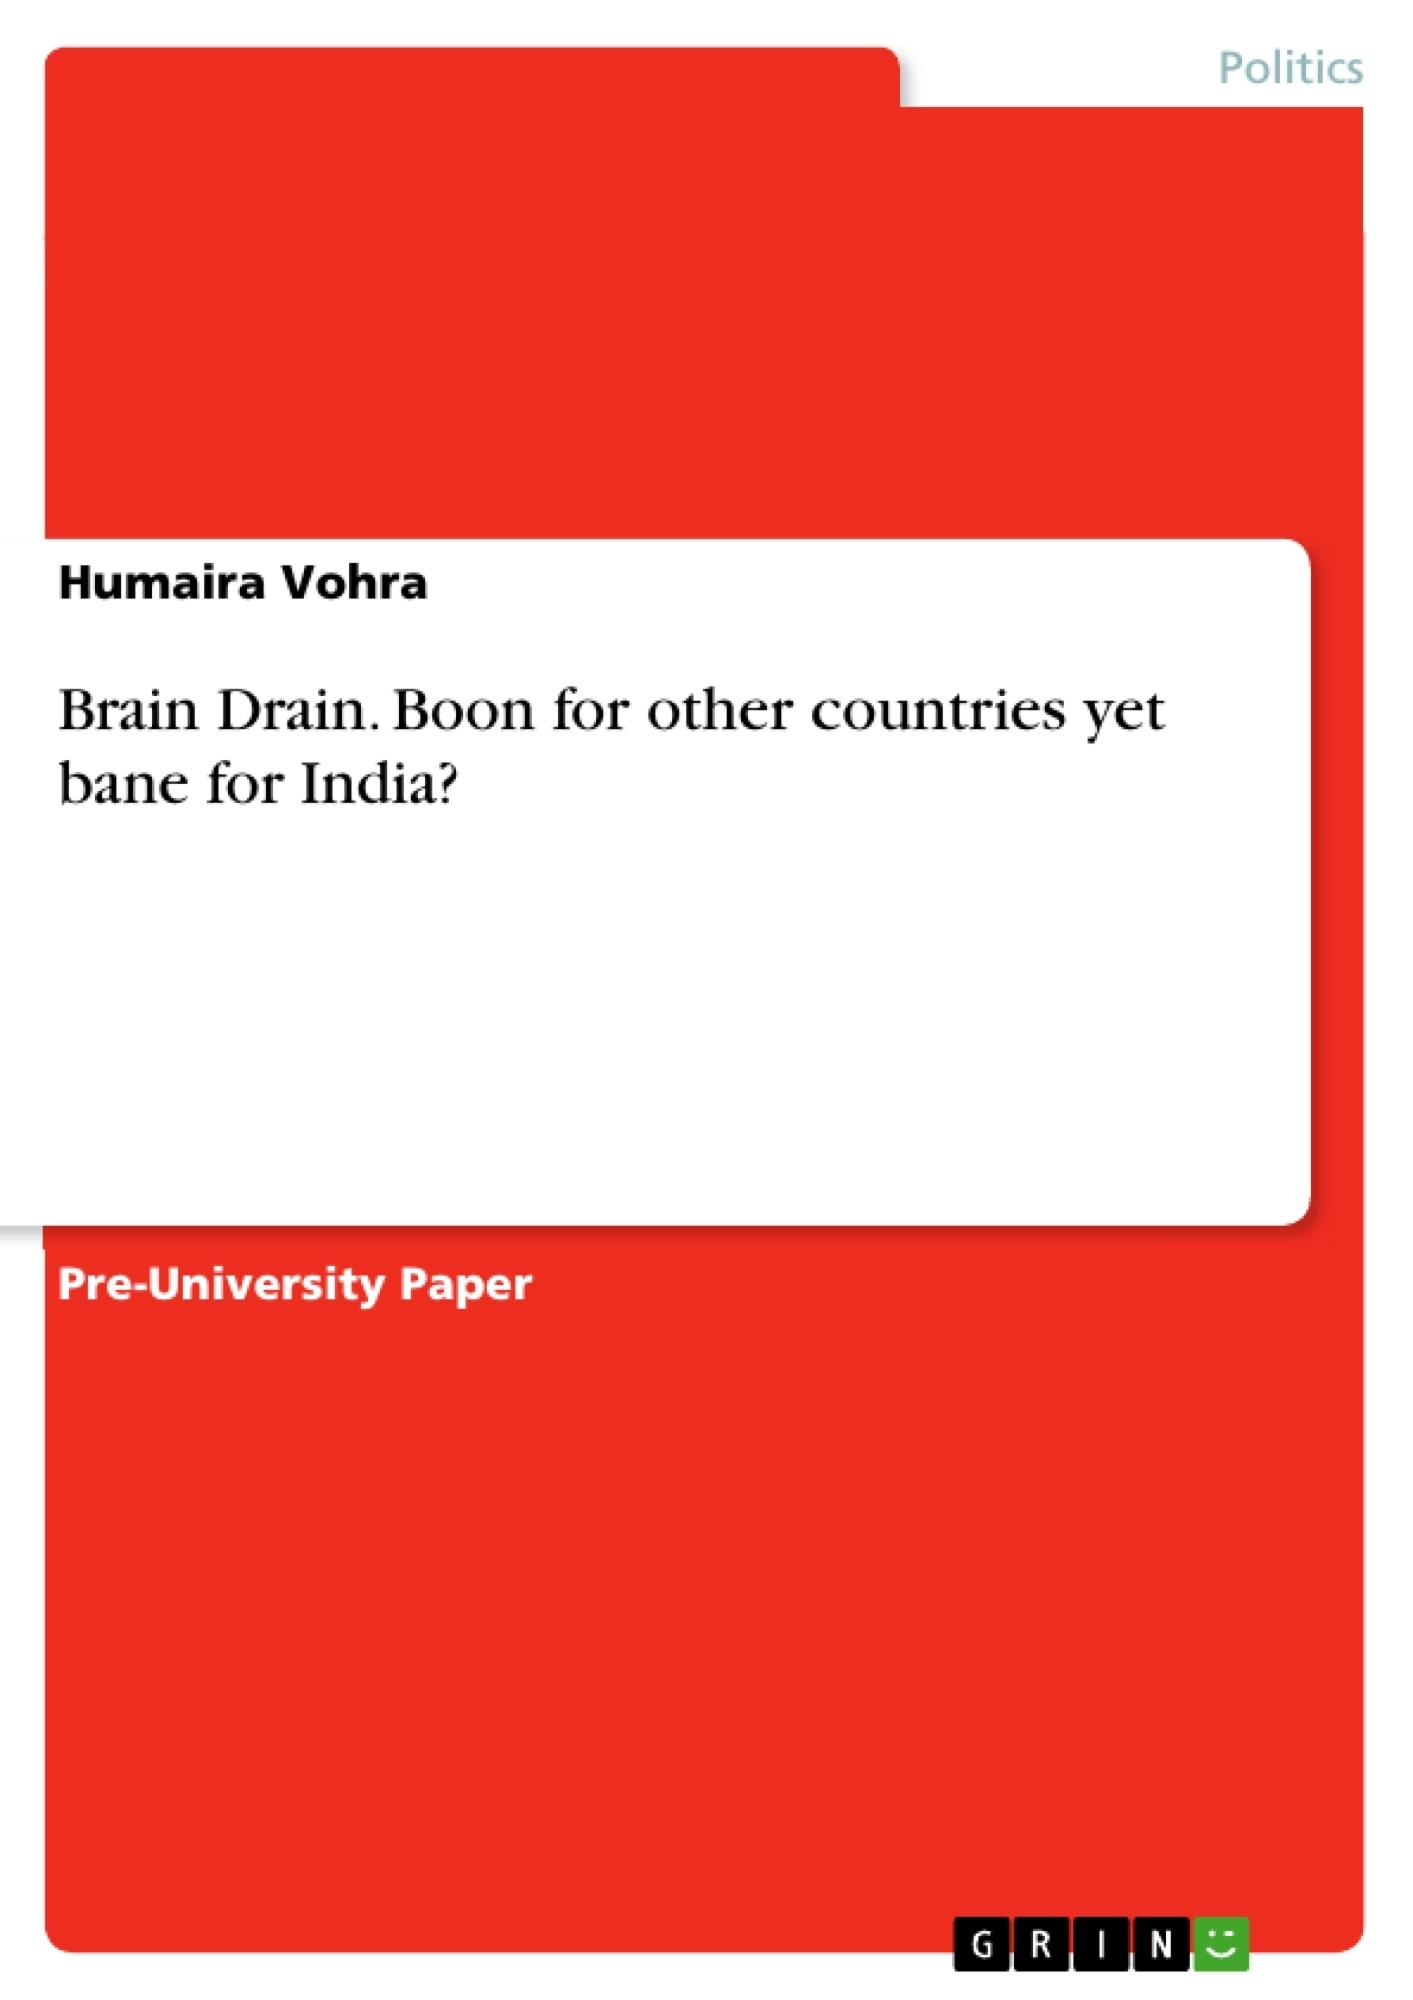 Title: Brain Drain. Boon for other countries yet bane for India?